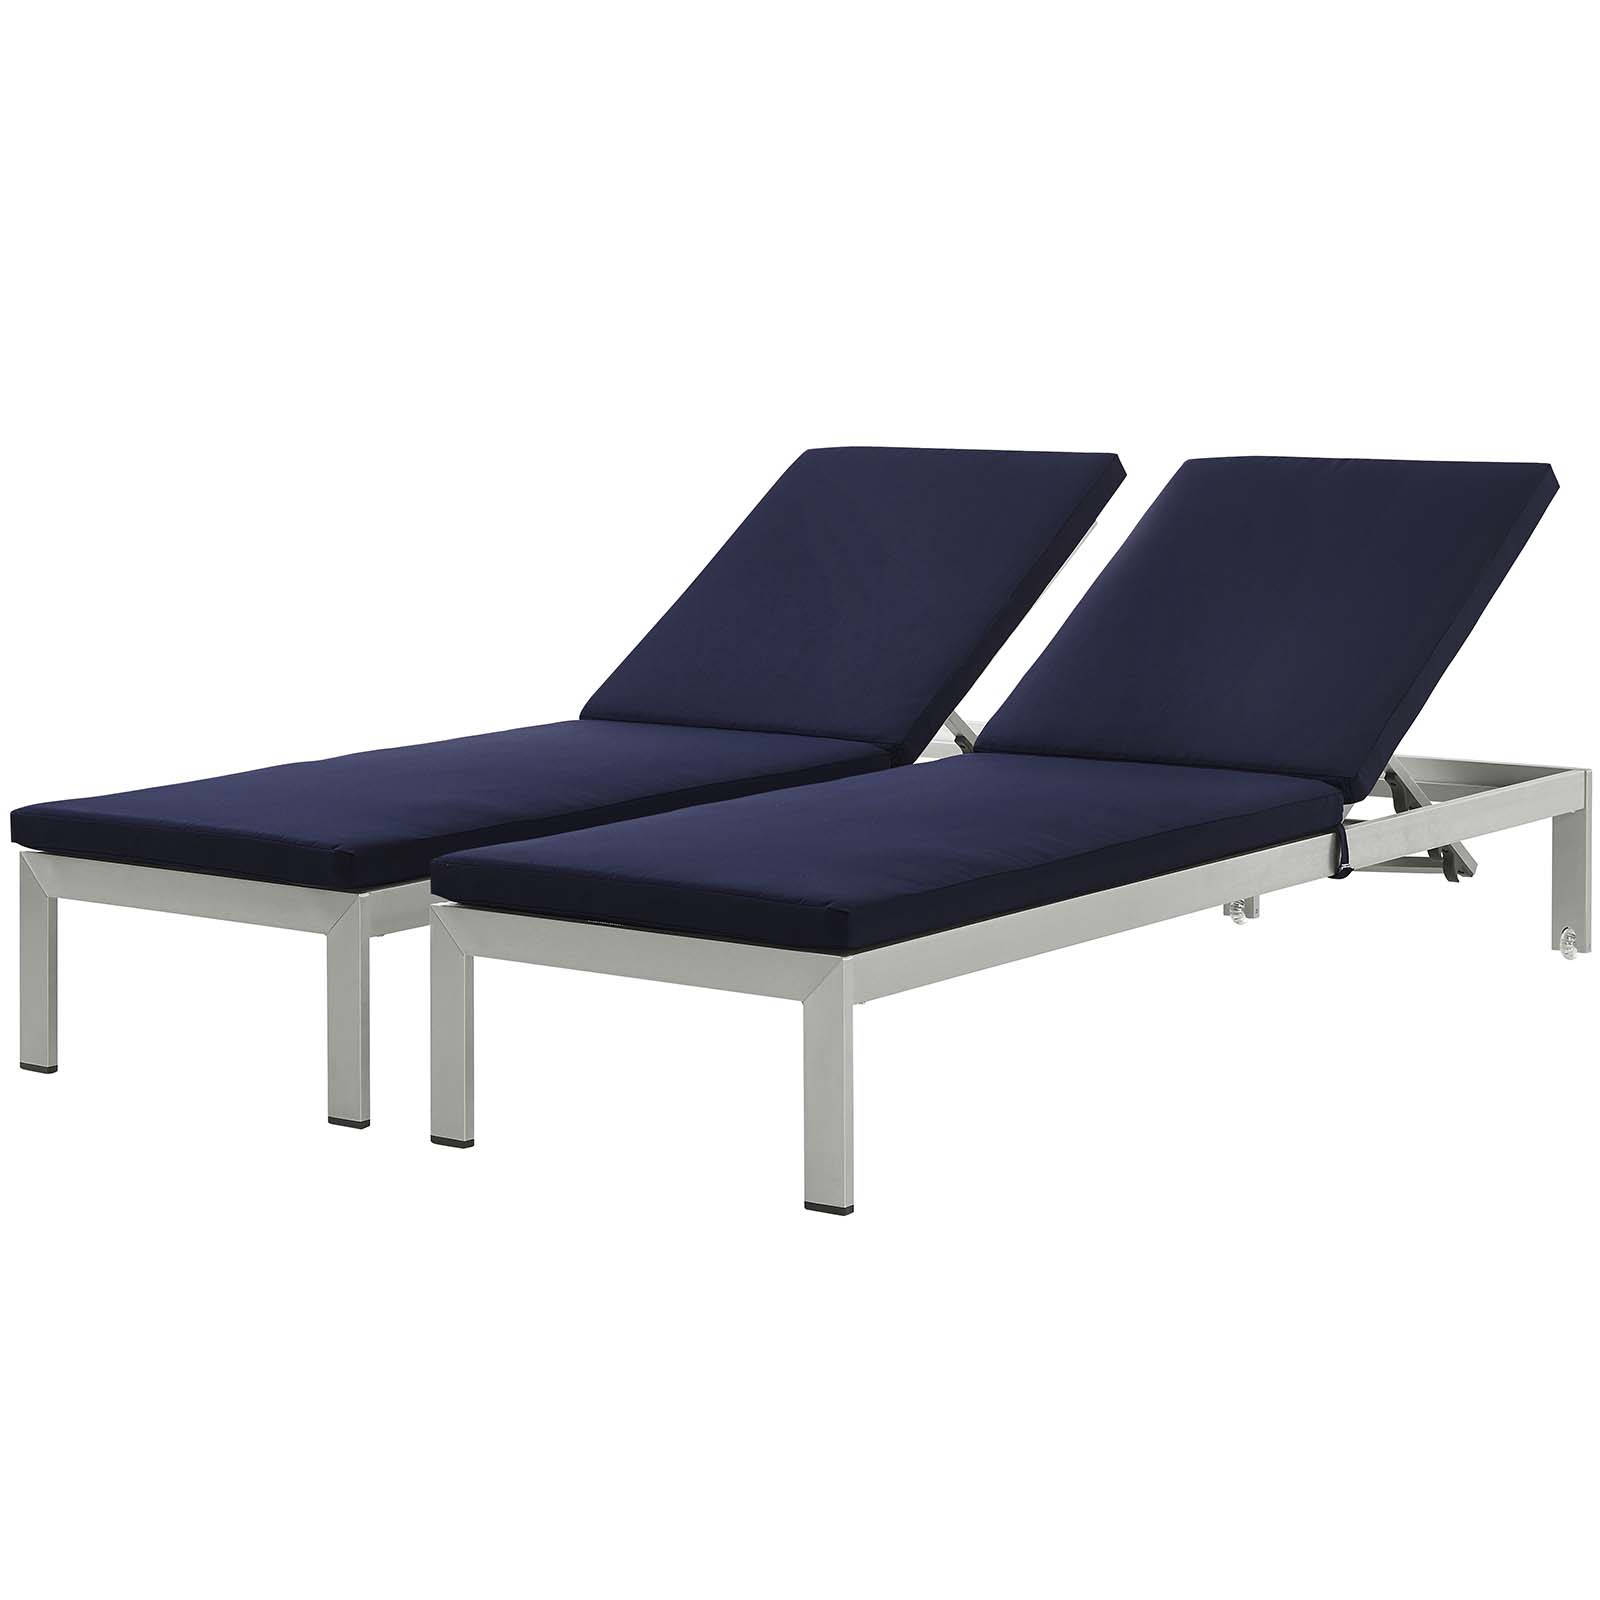 2 Modway Furniture Shore Silver Navy Outdoor Chaise With Cushion Intended For Most Recently Released Shore Aluminum Outdoor Chaise Lounges (View 20 of 25)